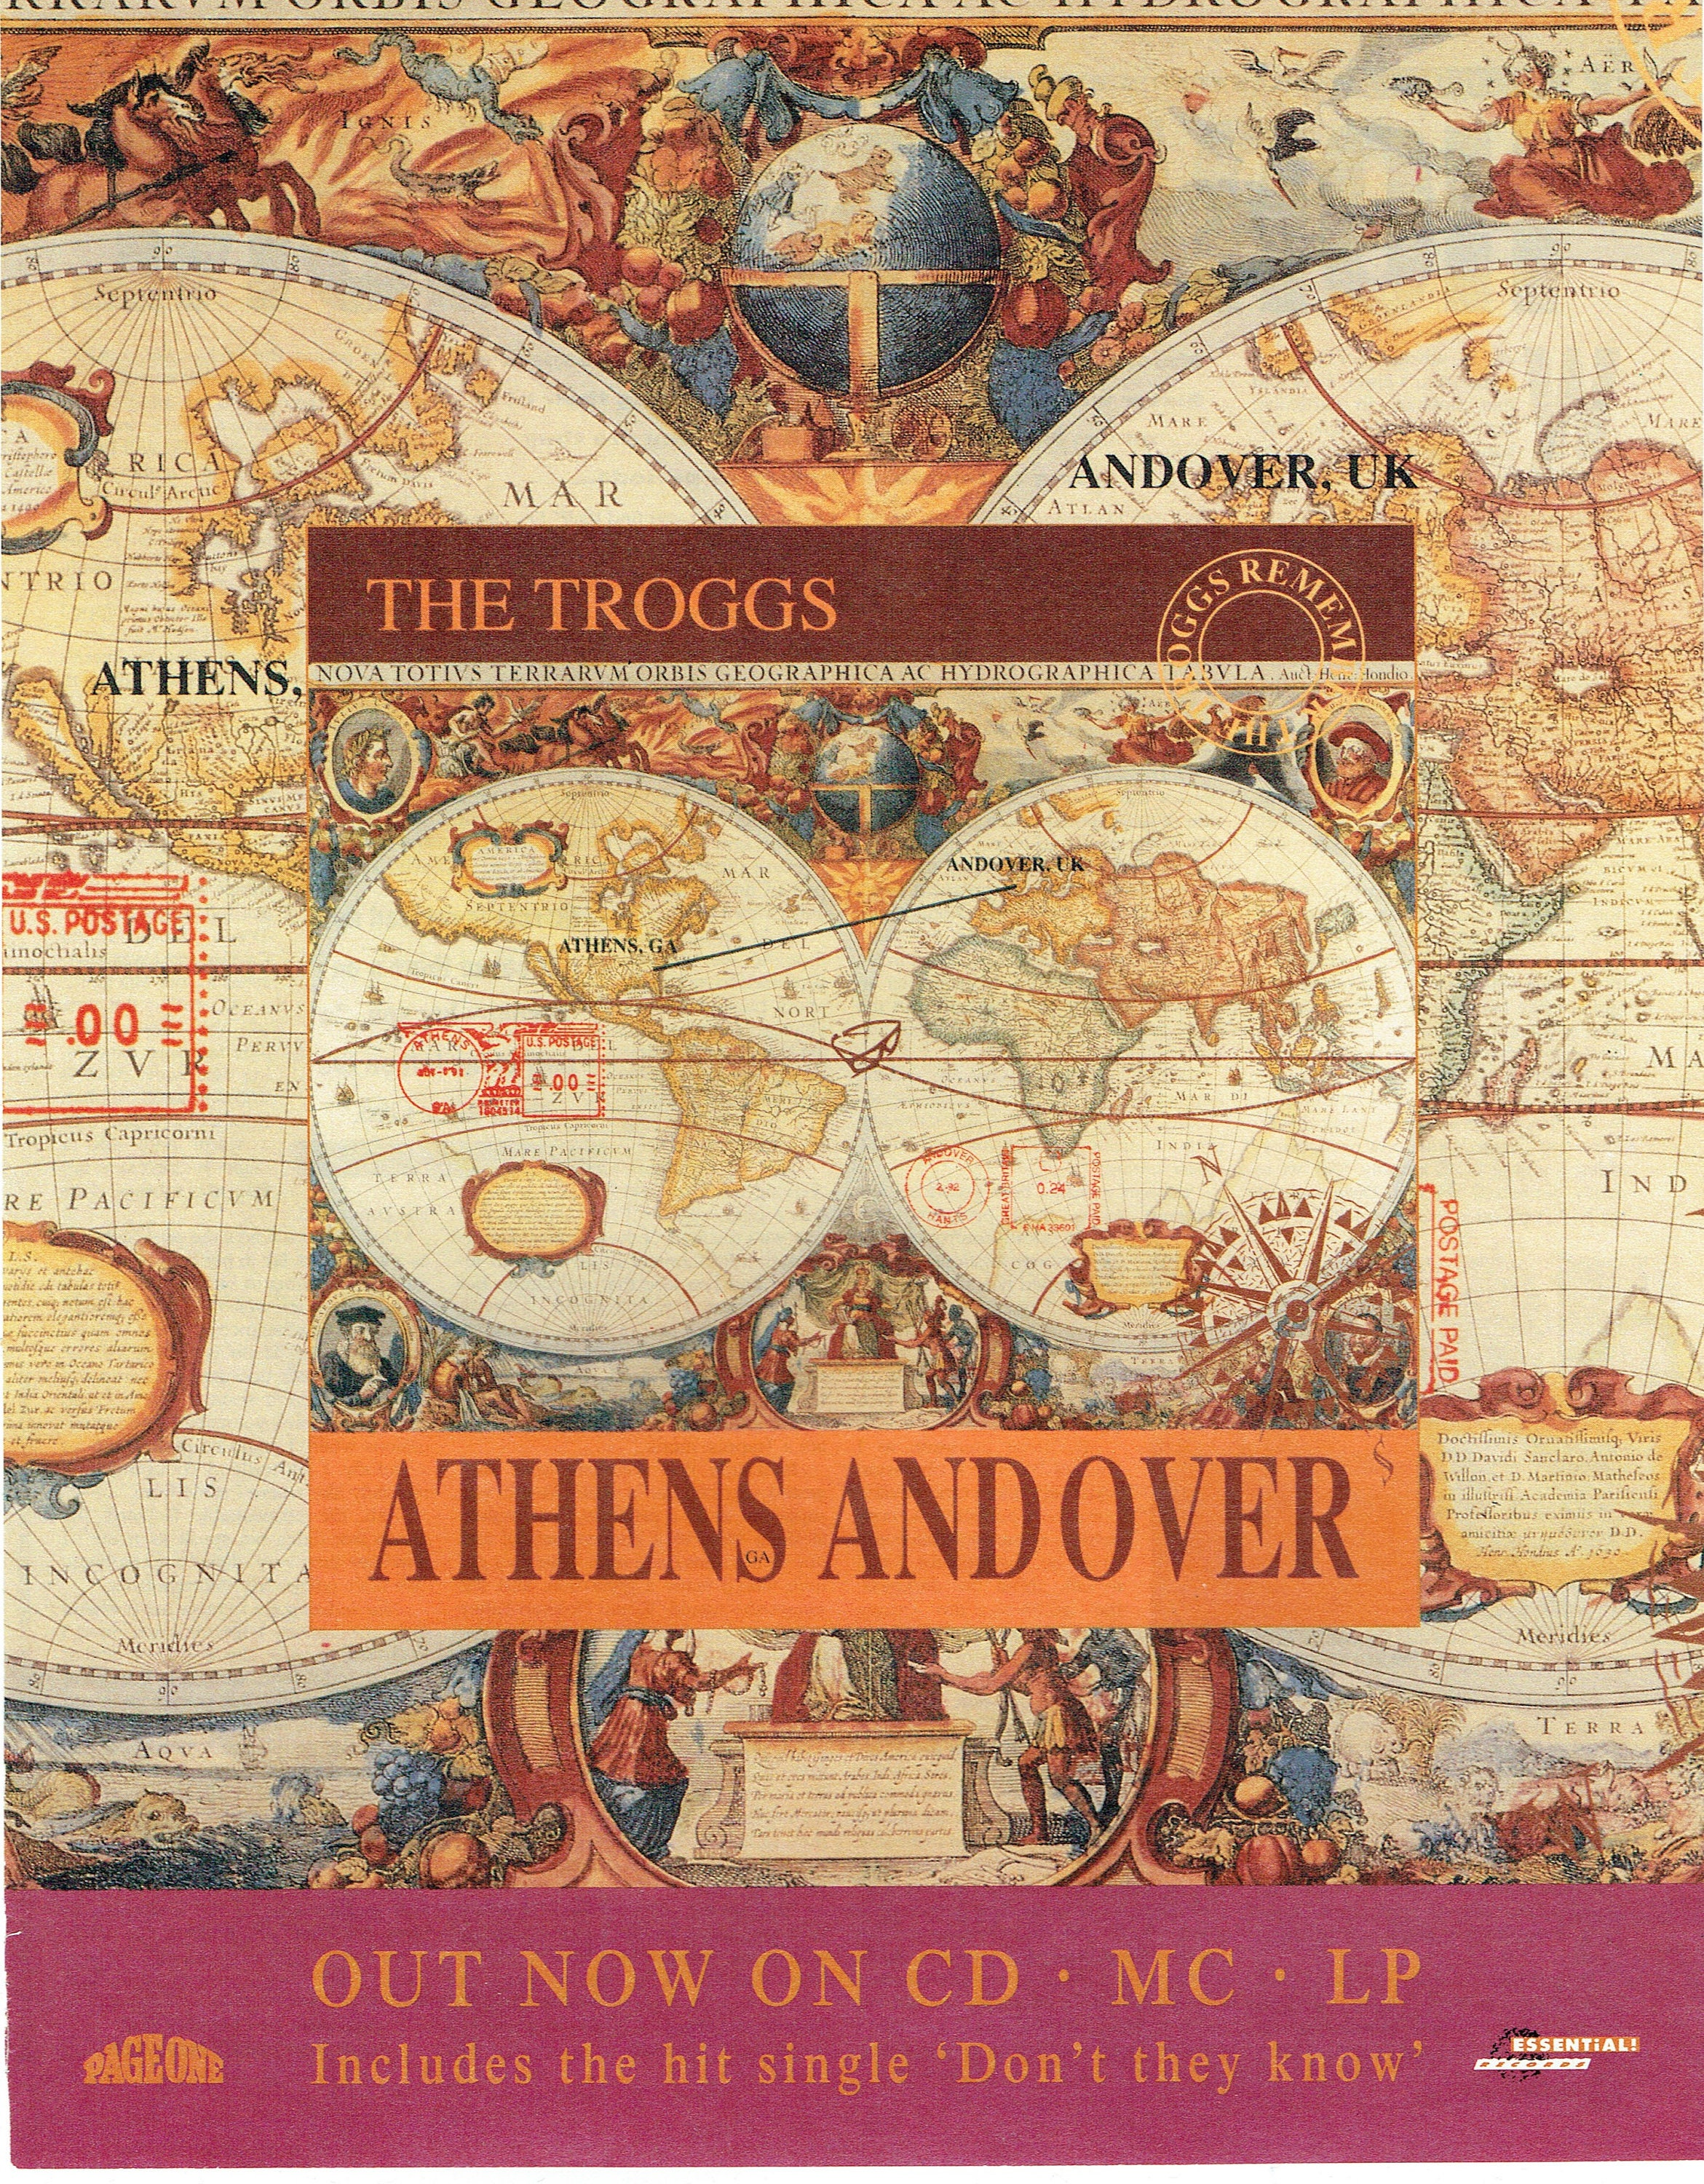 1992 Advertisement The Troggs Athens And Over Andover UK CD Ad